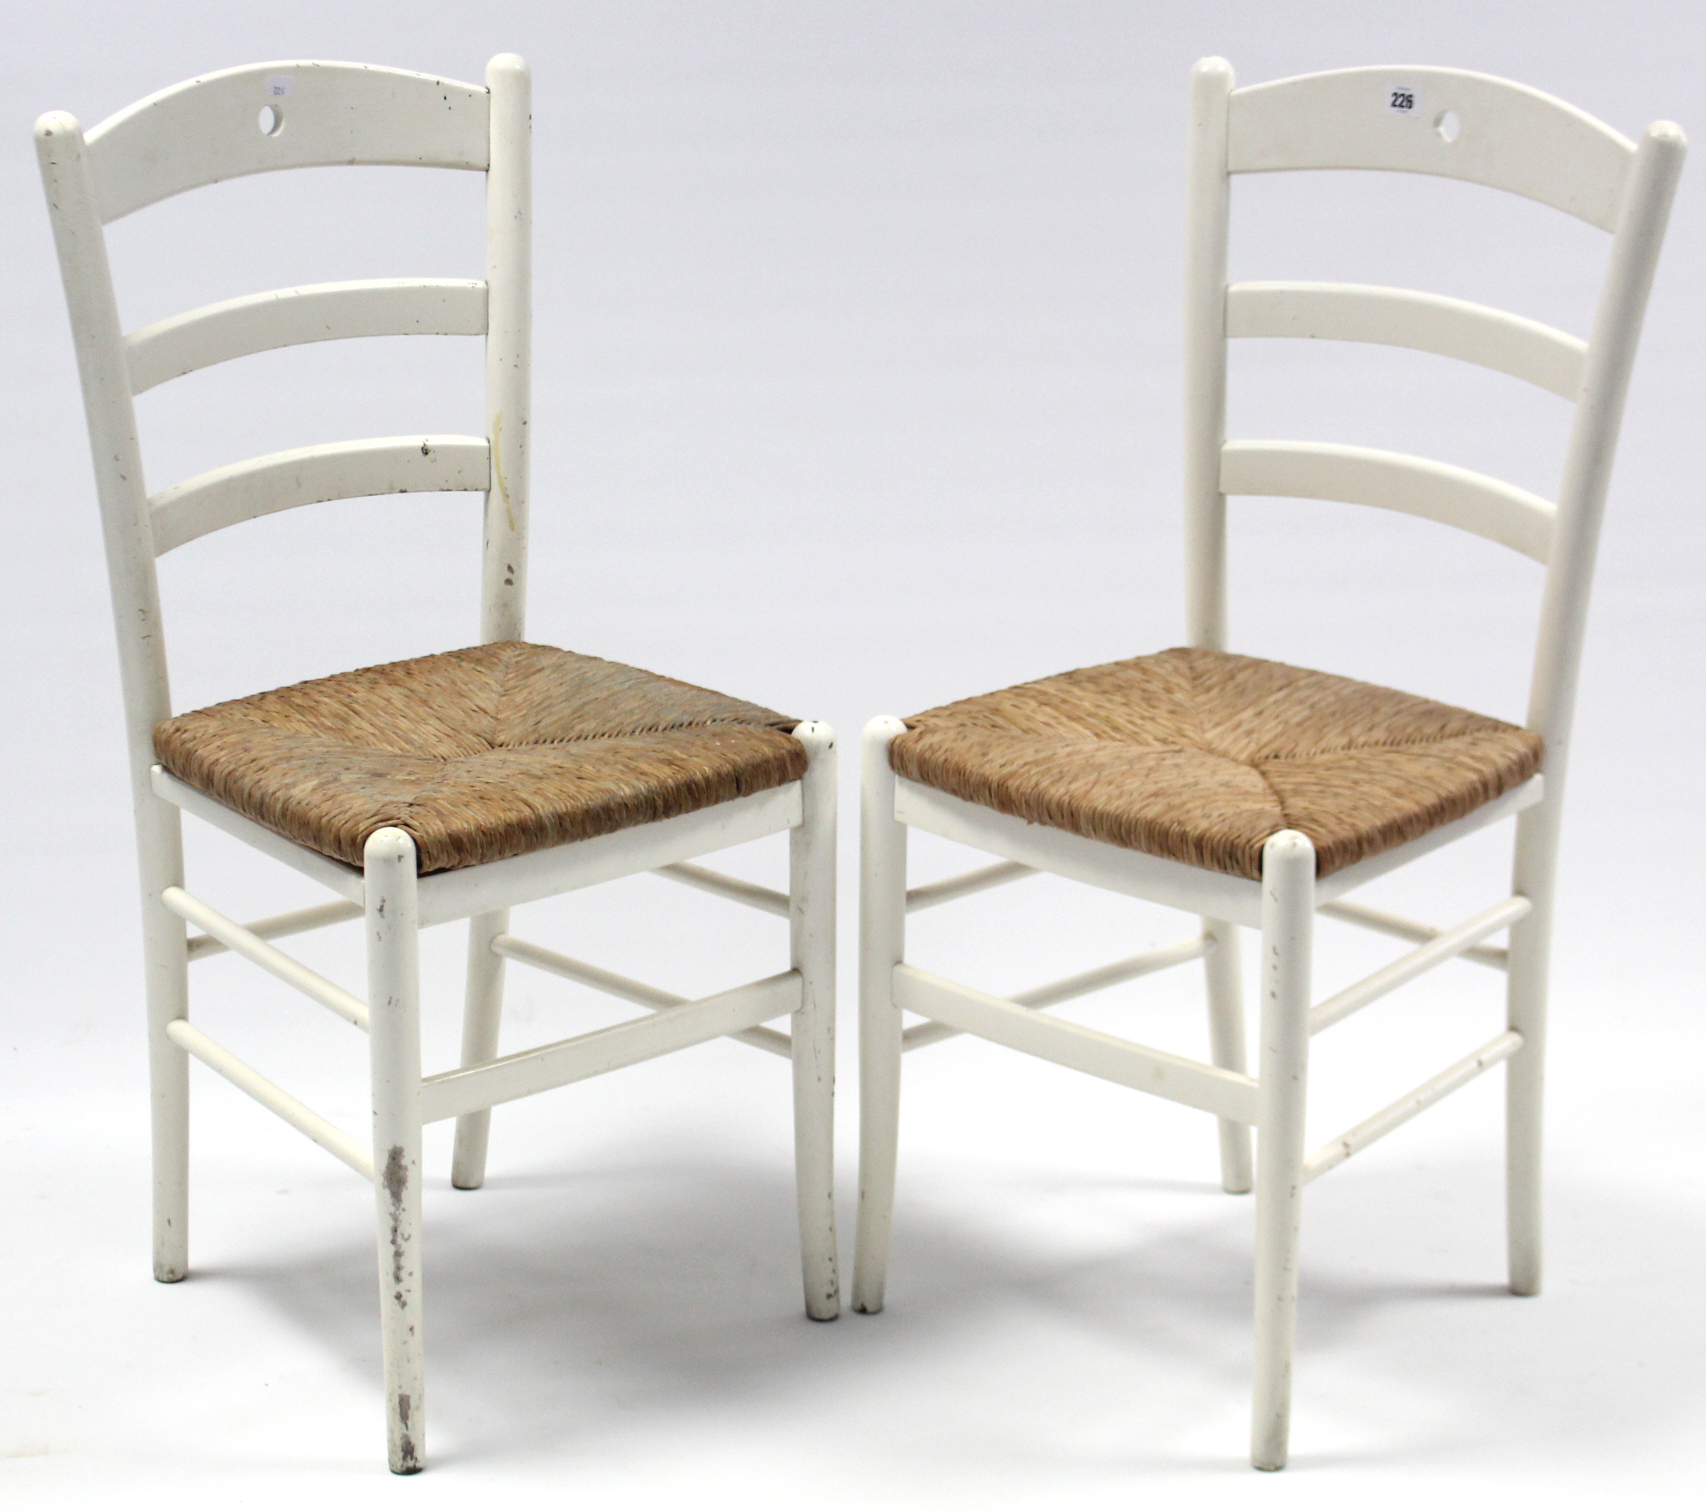 Lot 261 - A pair of white painted wooden ladder-back kitchen chairs with woven rush seats, & on round